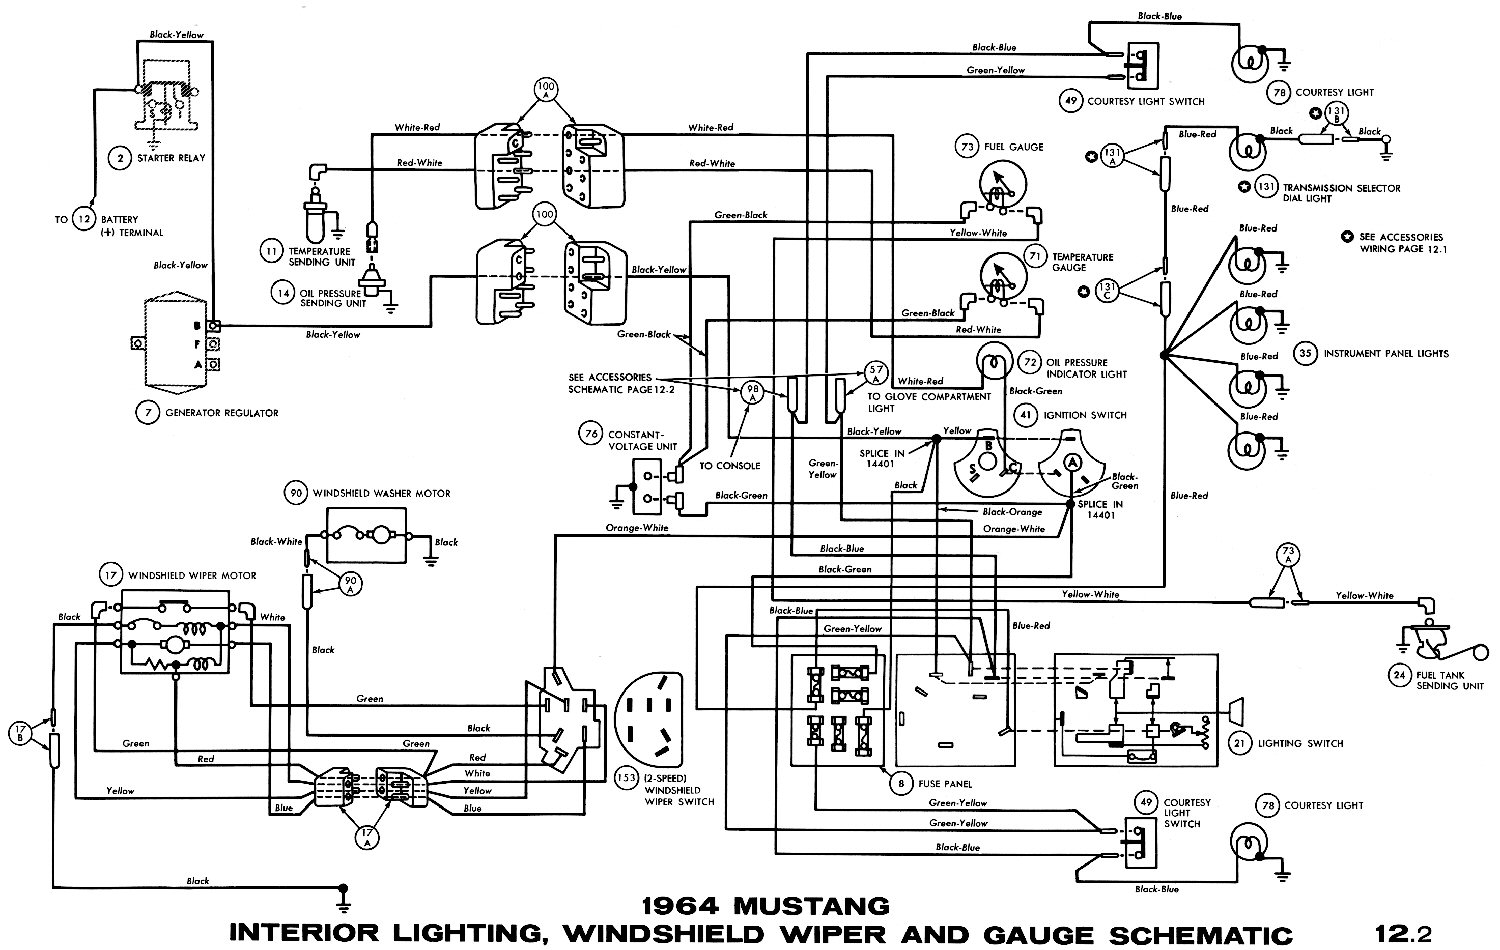 1964 Mustang Wiring Diagrams on 1995 Toyota Camry Engine Diagram